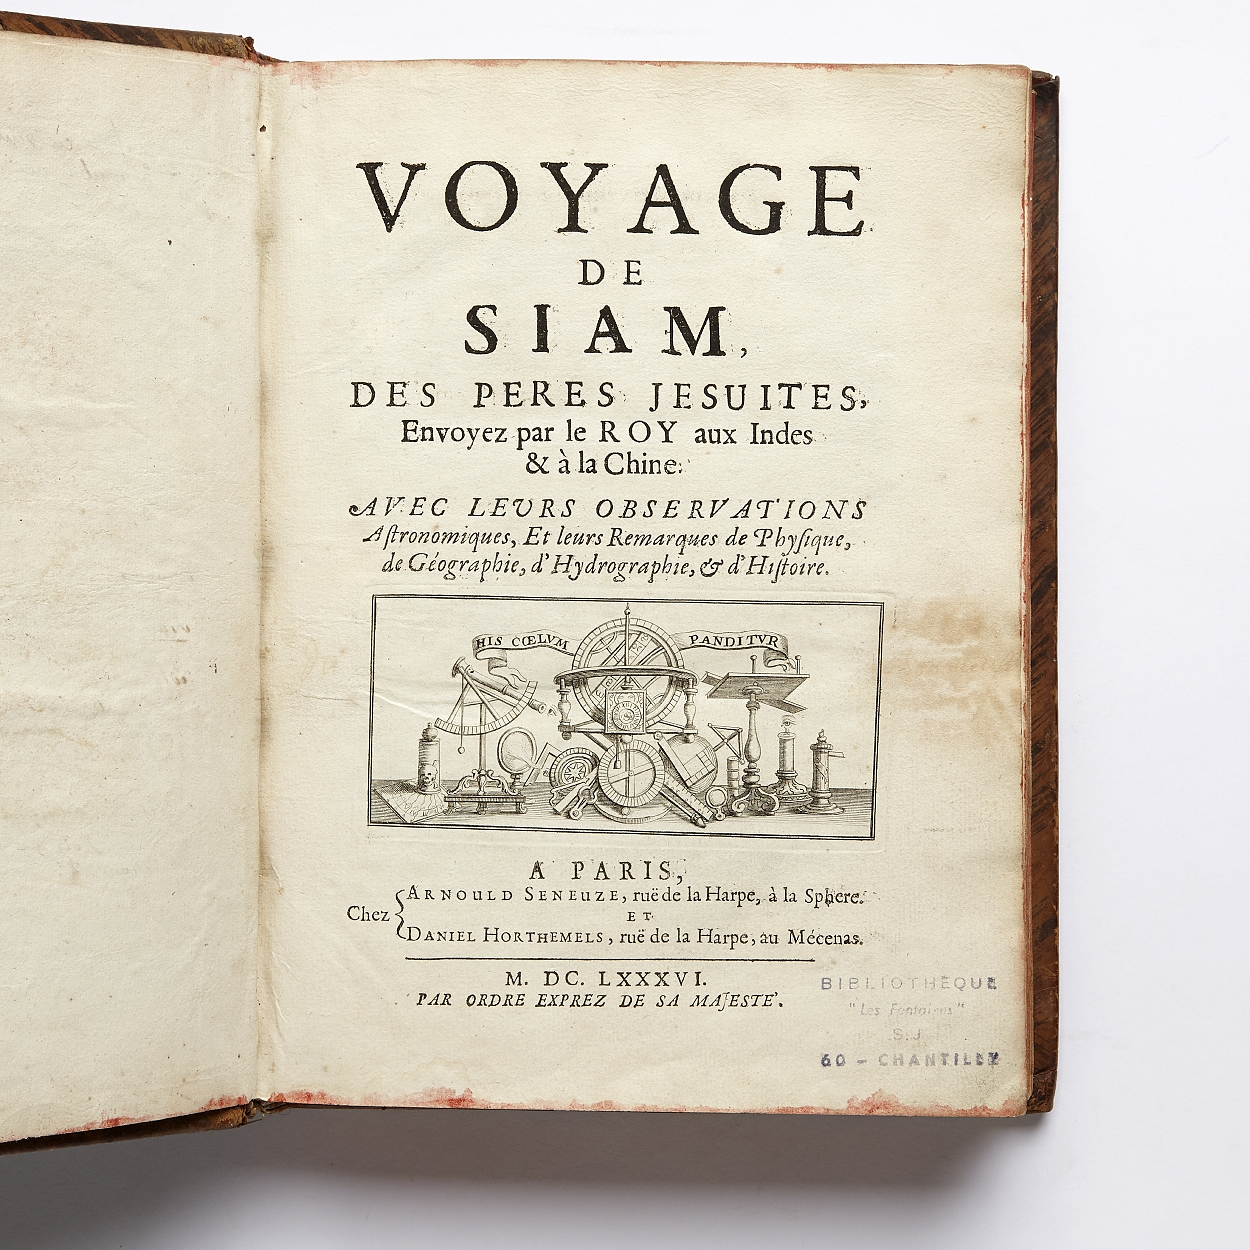 Tachard's two voyages to Siam 1686-89